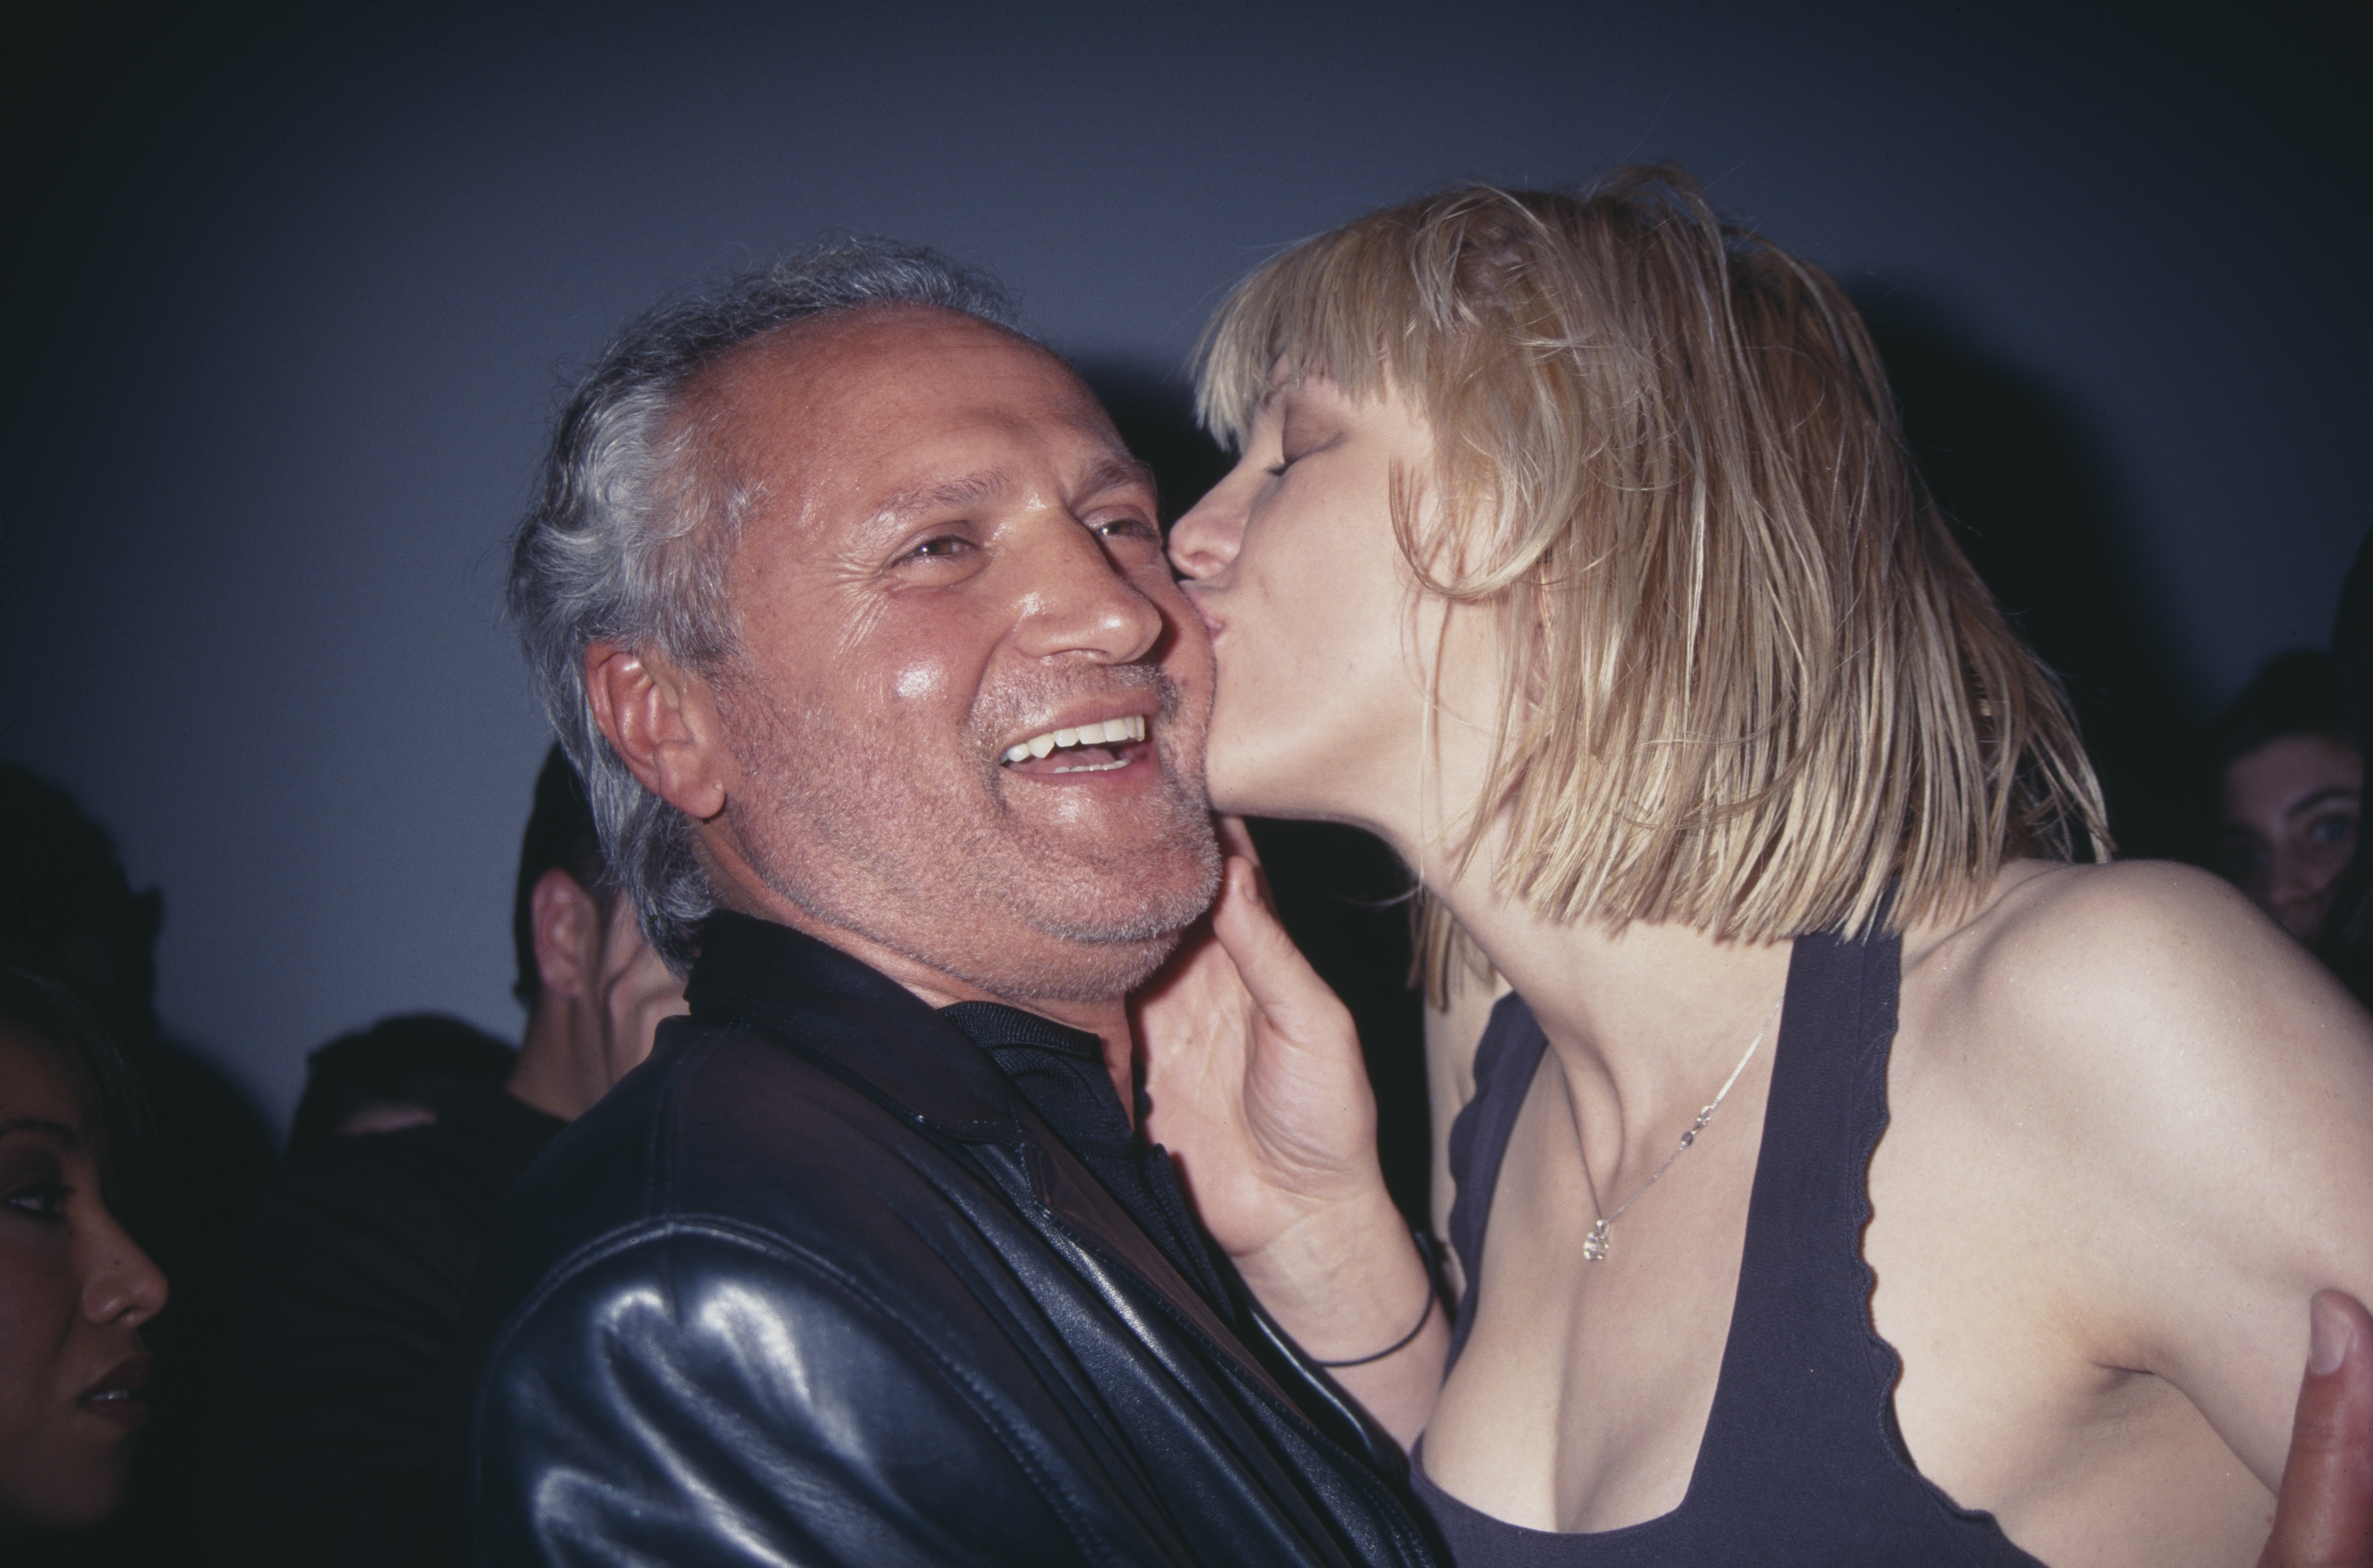 Courtney Love and Gianni Versace before one of the late designer's fashion shows in 1997.